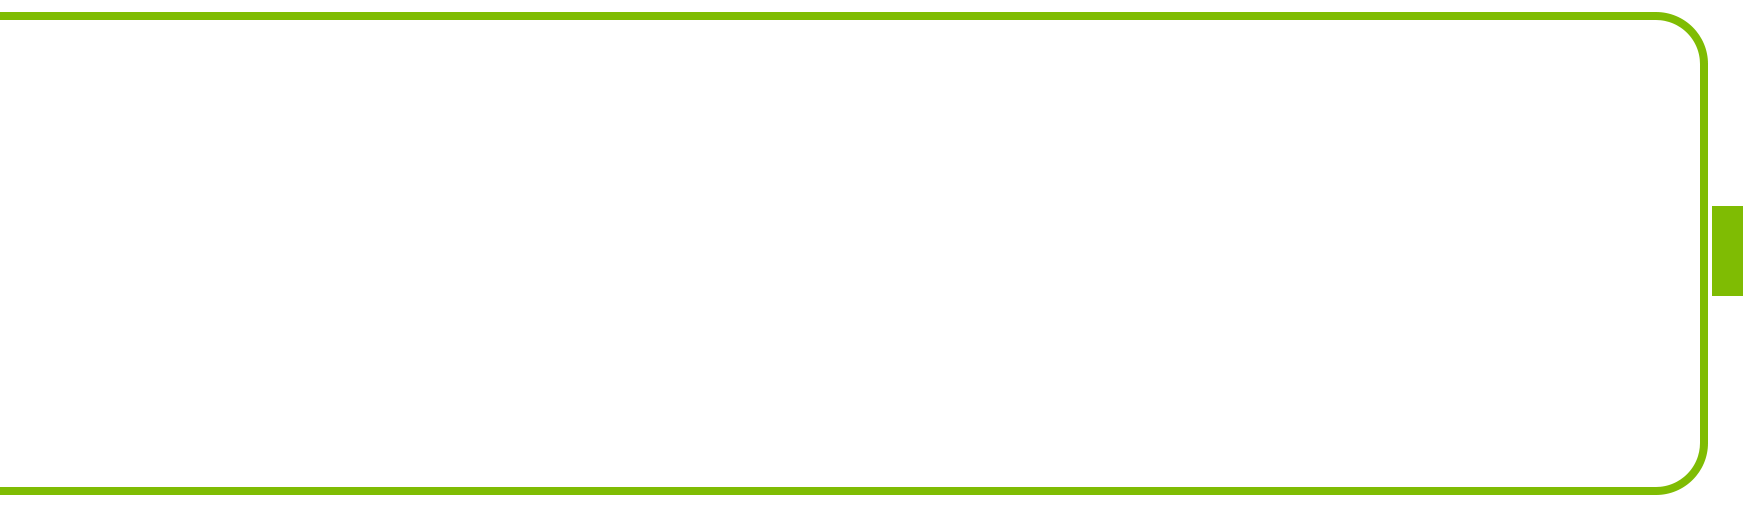 Large green battery outline